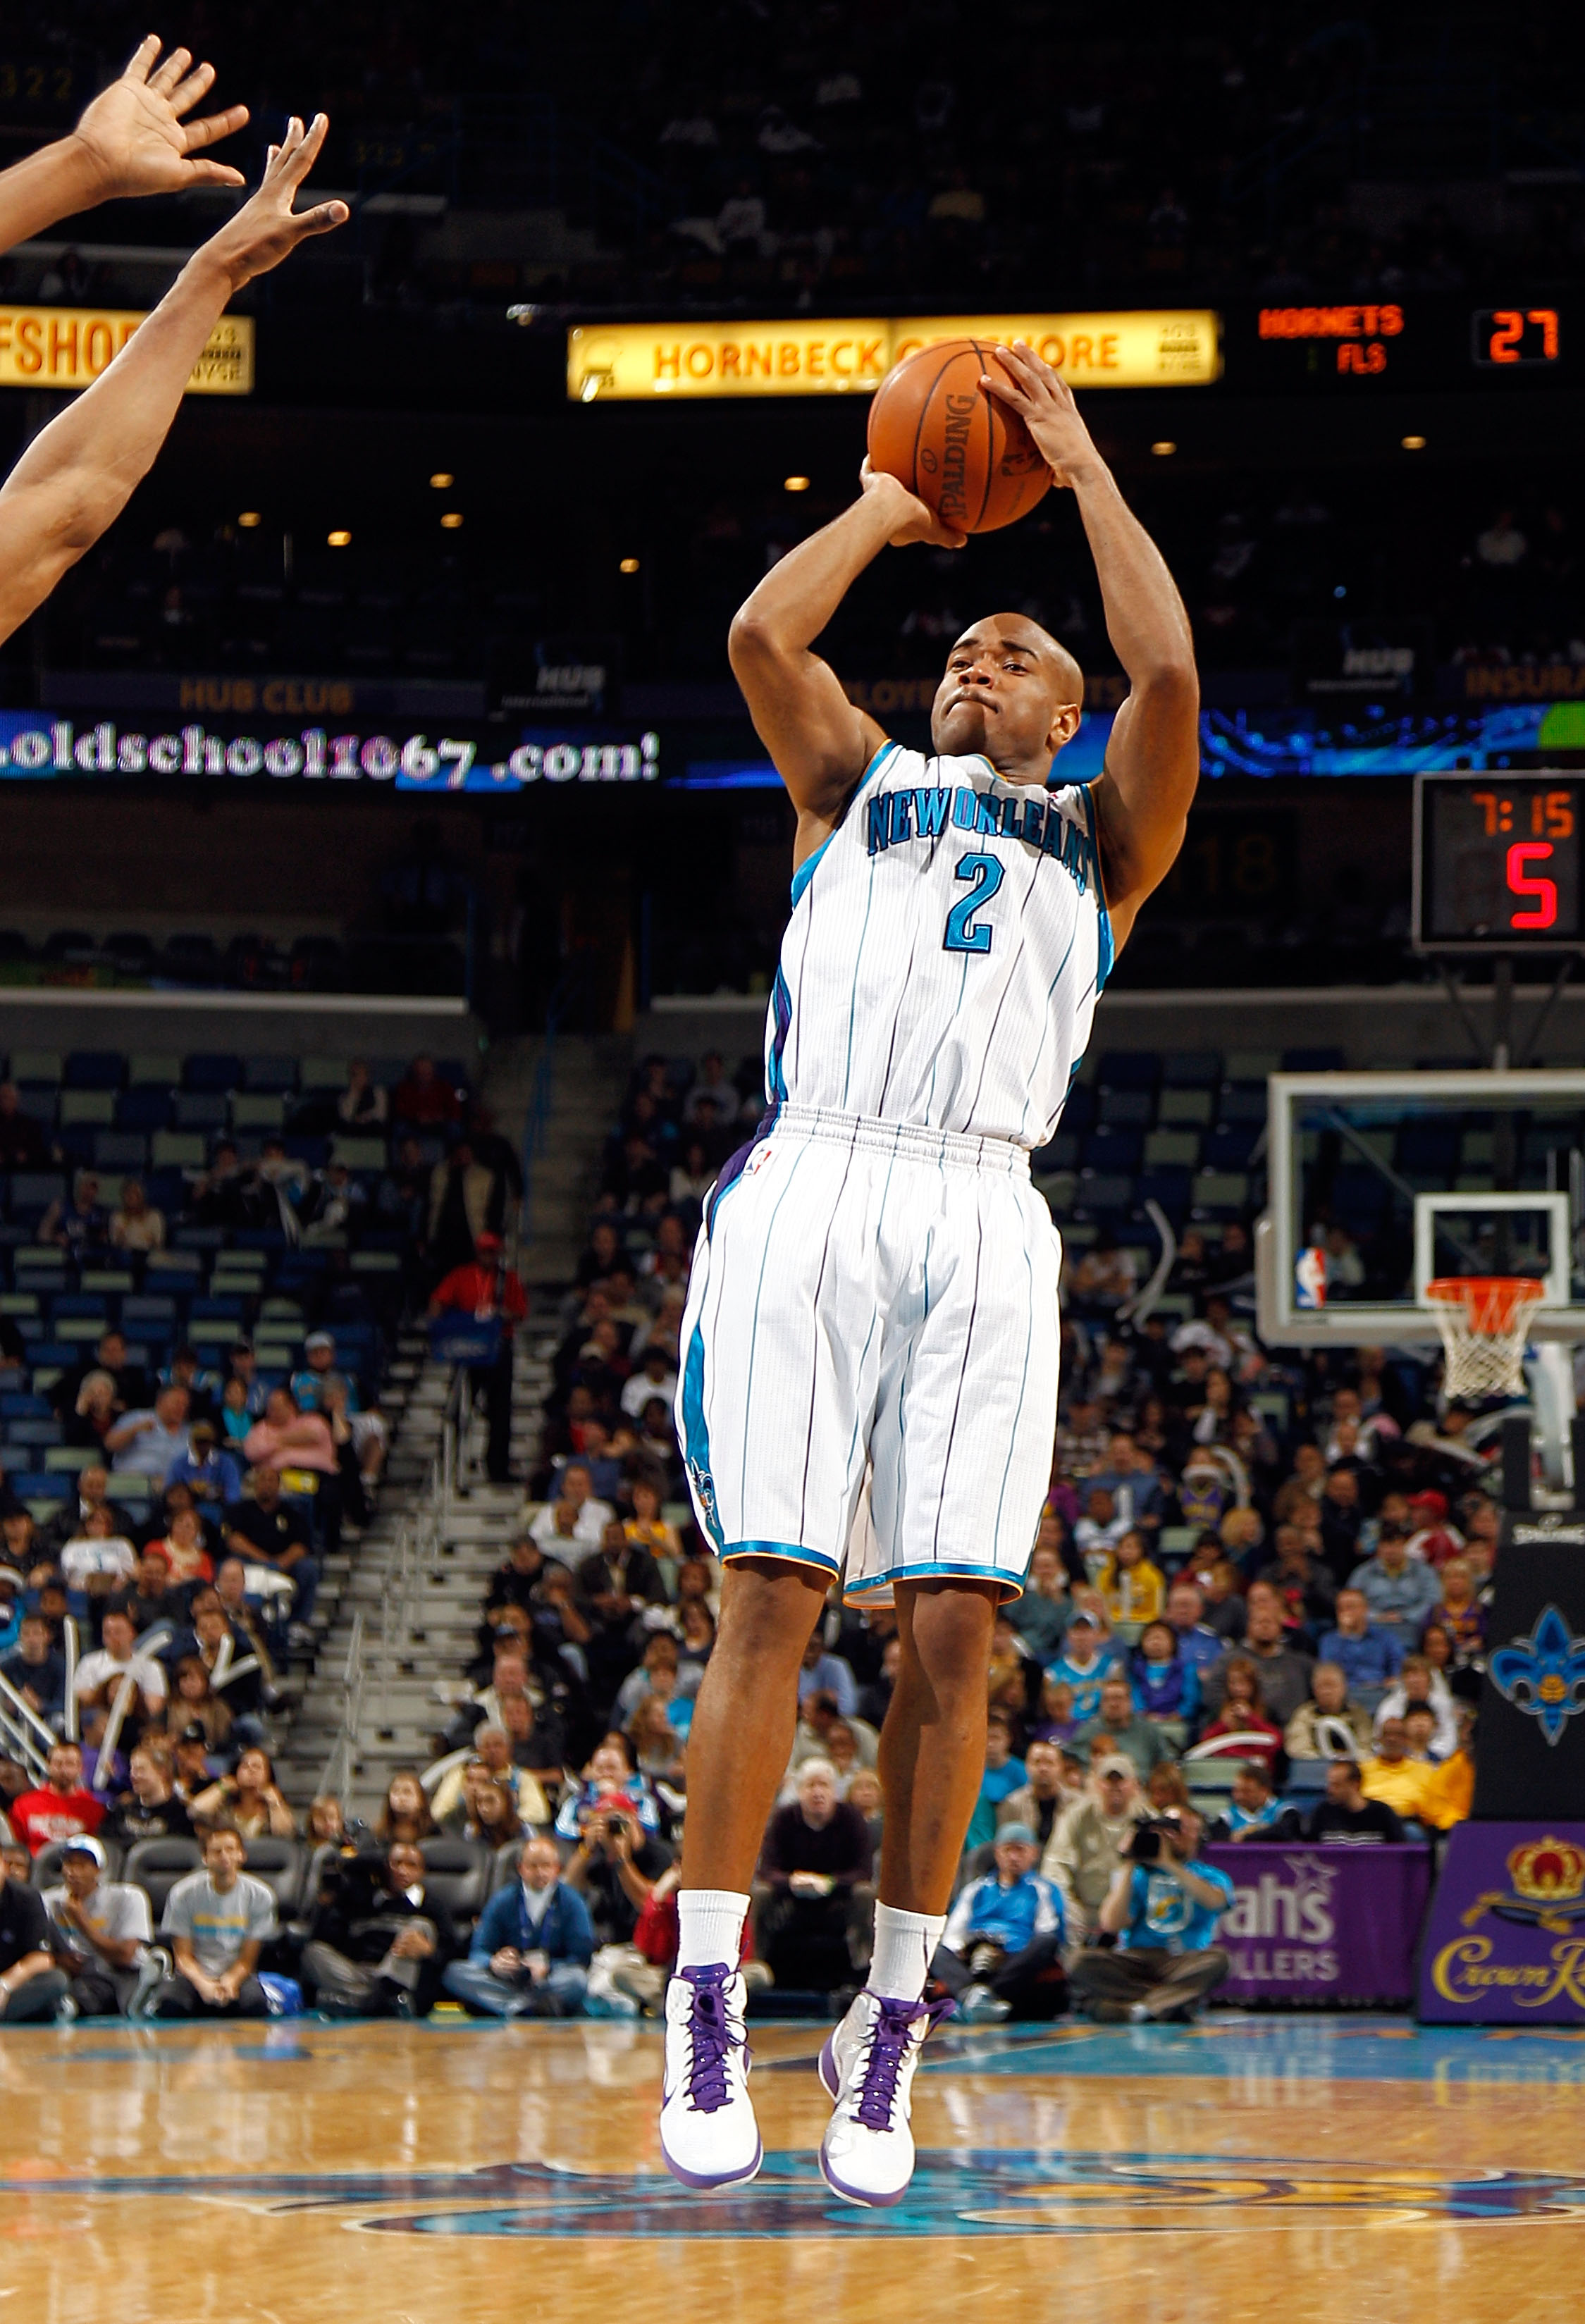 NEW ORLEANS, LA - JANUARY 03:  Jarrett Jack #2 of the New Orleans Hornets shoots a jumper against the Philadelphia 76ers at New Orleans Arena on January 3, 2011 in New Orleans, Louisiana. NOTE TO USER: User expressly acknowledges and agrees that, by downl